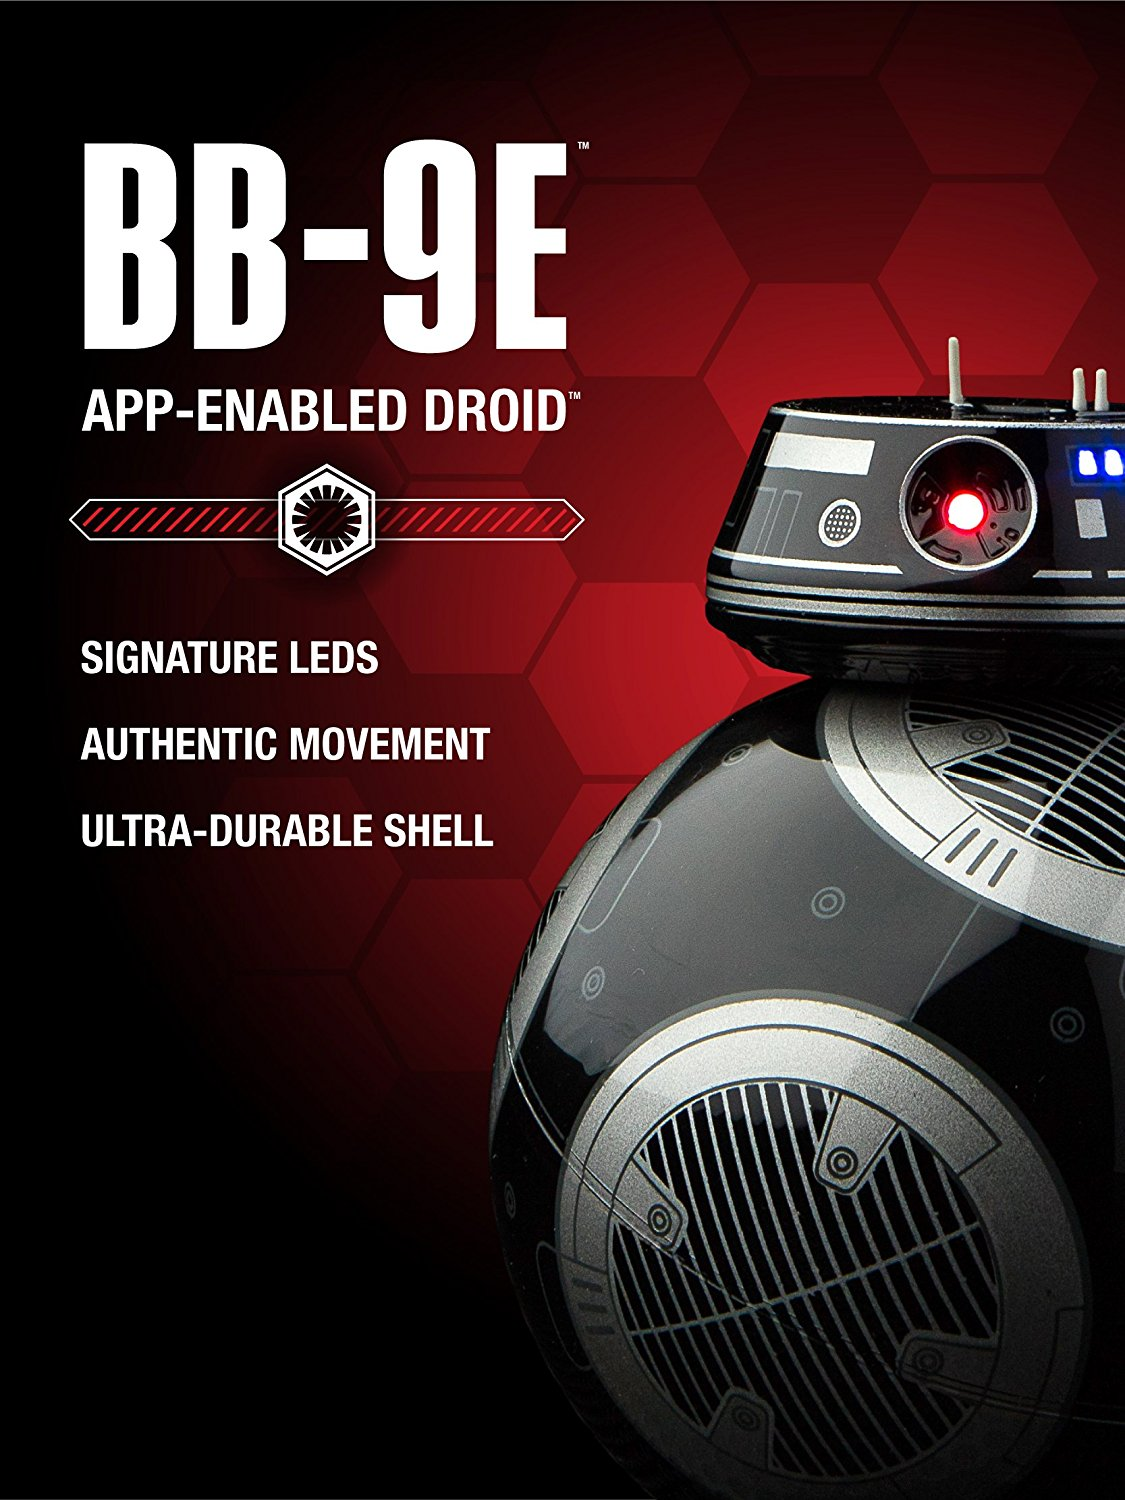 Application BB-9E